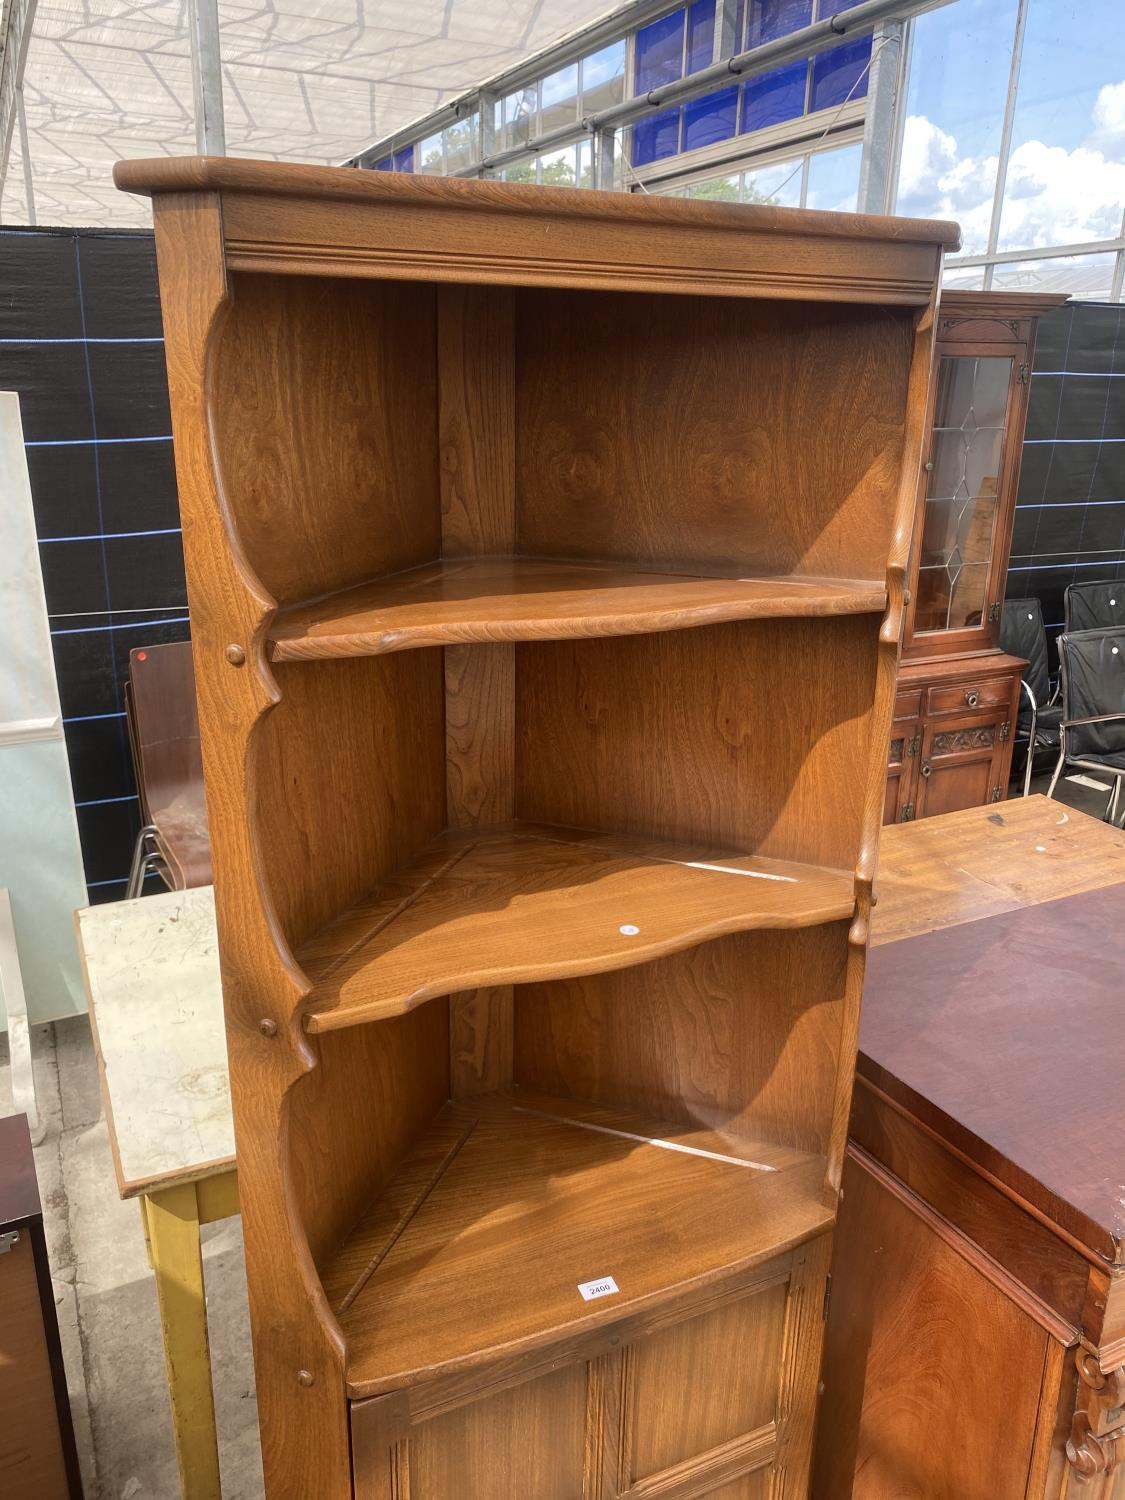 """AN ERCOL OPEN CORNER CUPBOARD WITH CUPBOARDS TO THE BASE, 27"""" WIDE - Image 2 of 5"""